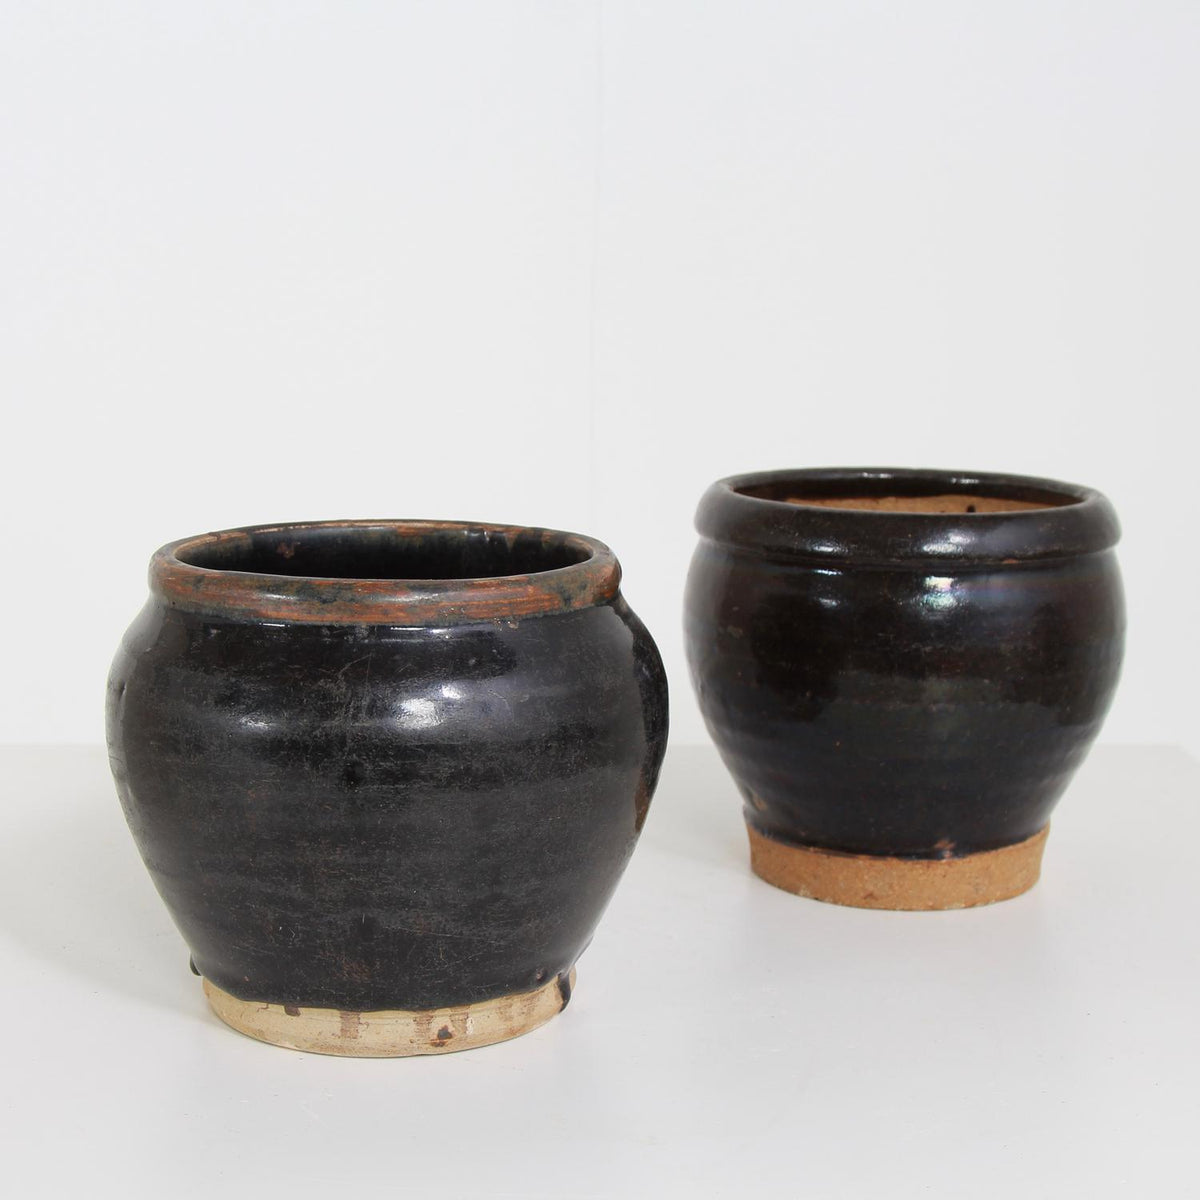 COLLECTION OF TWO CHINESE ANTIQUE GLAZED POTTERY JARS